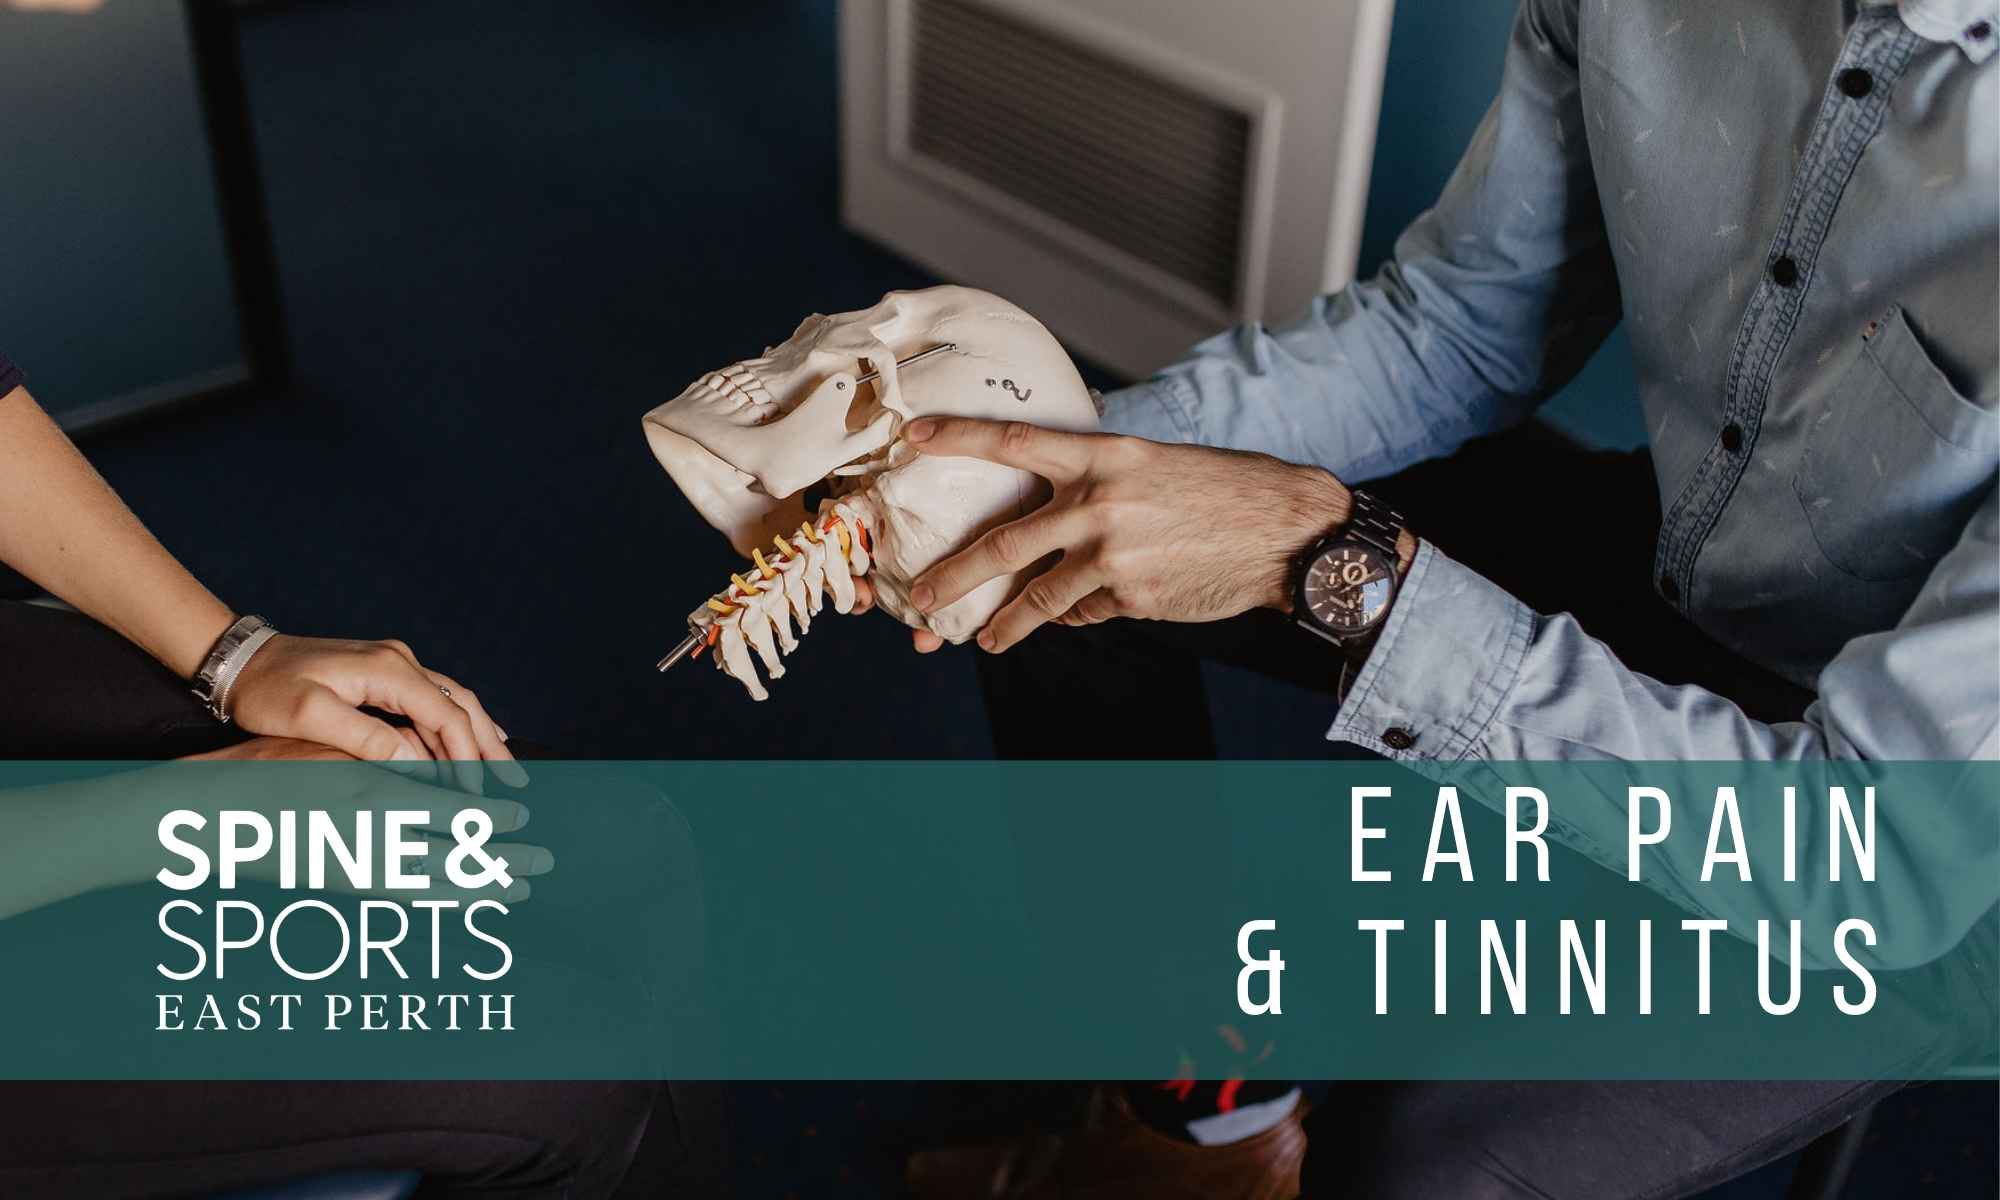 East Perth Ear pain & Tinnitus at Spine & Sports Centre.jpg